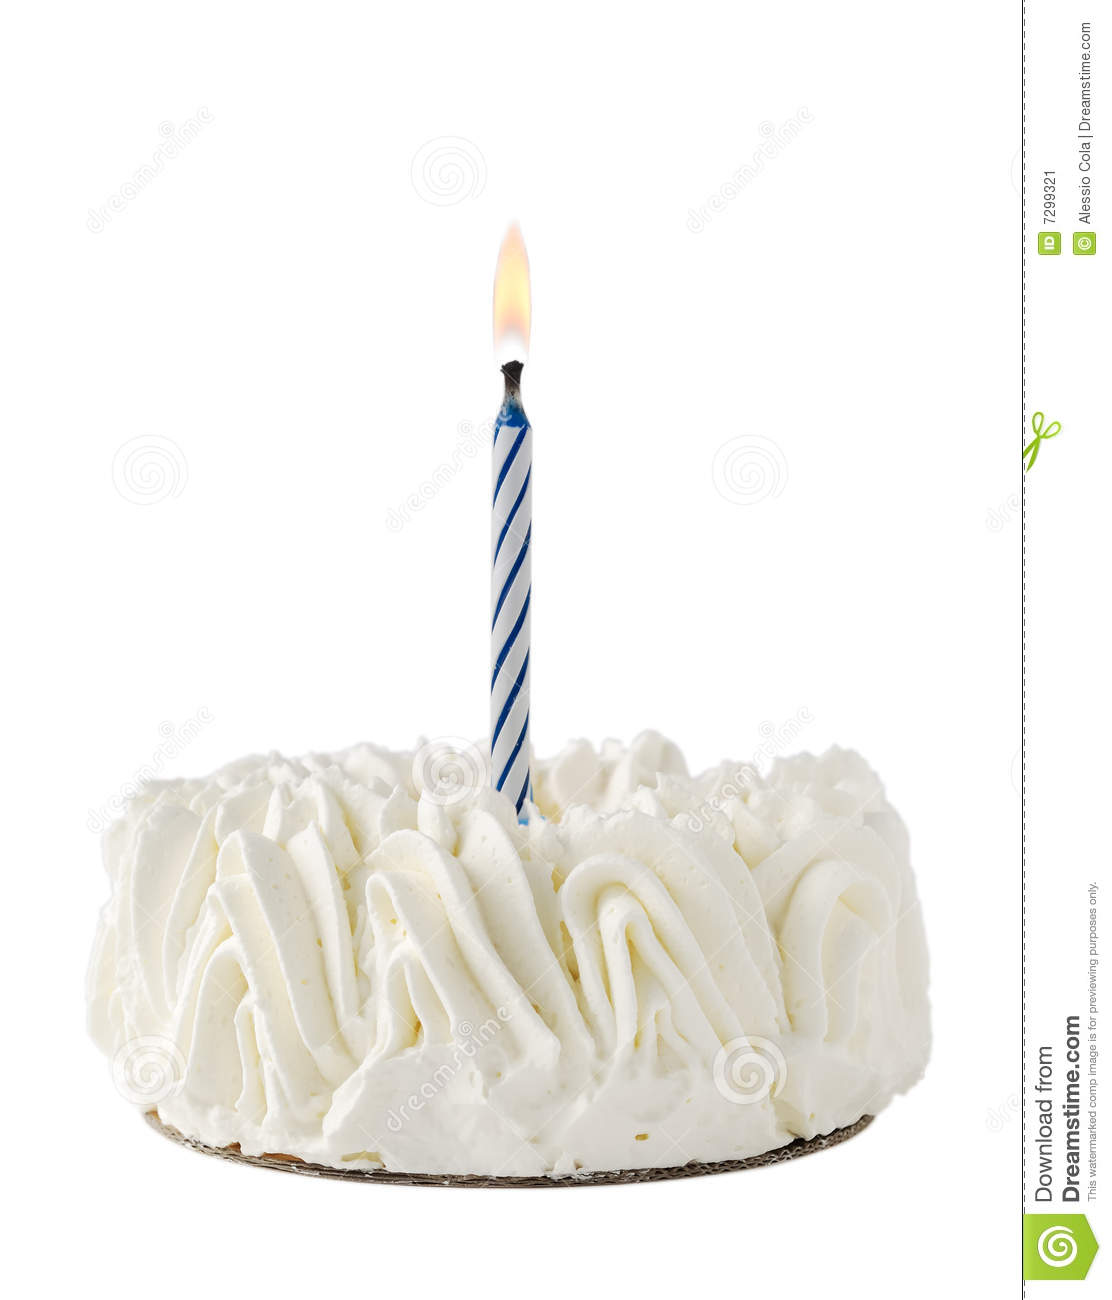 Happy Birthday Cake whit one blue candle isolated on white background.